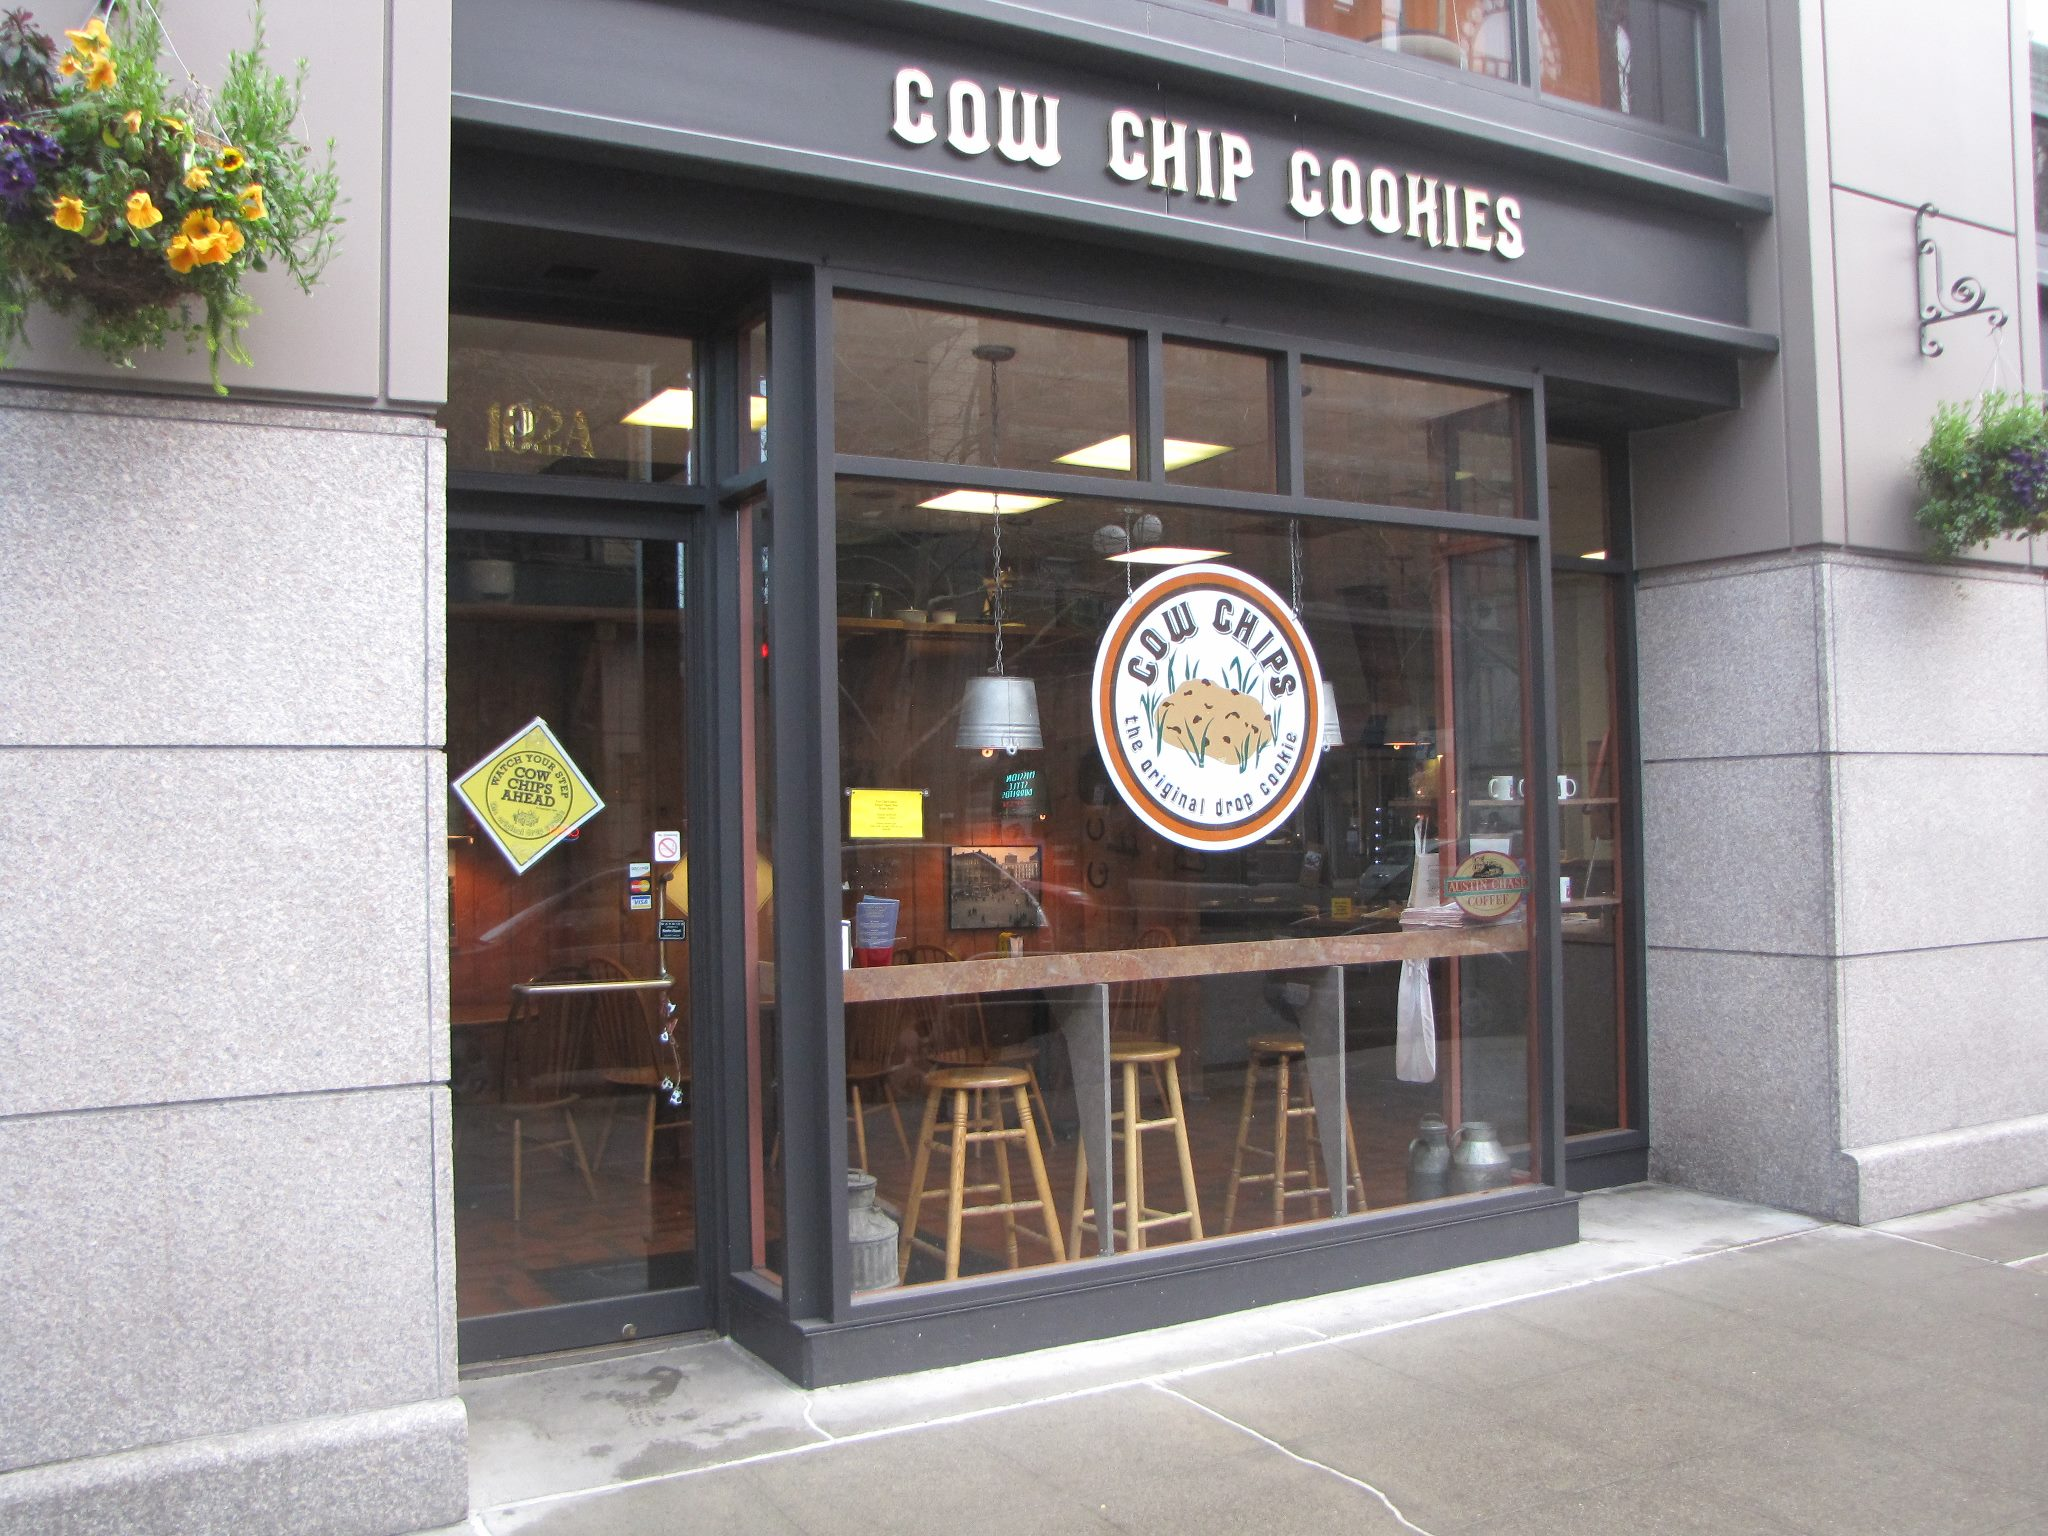 Cow Chip's Pioneer Square storefront. Photo by Cow Chip Cookies.